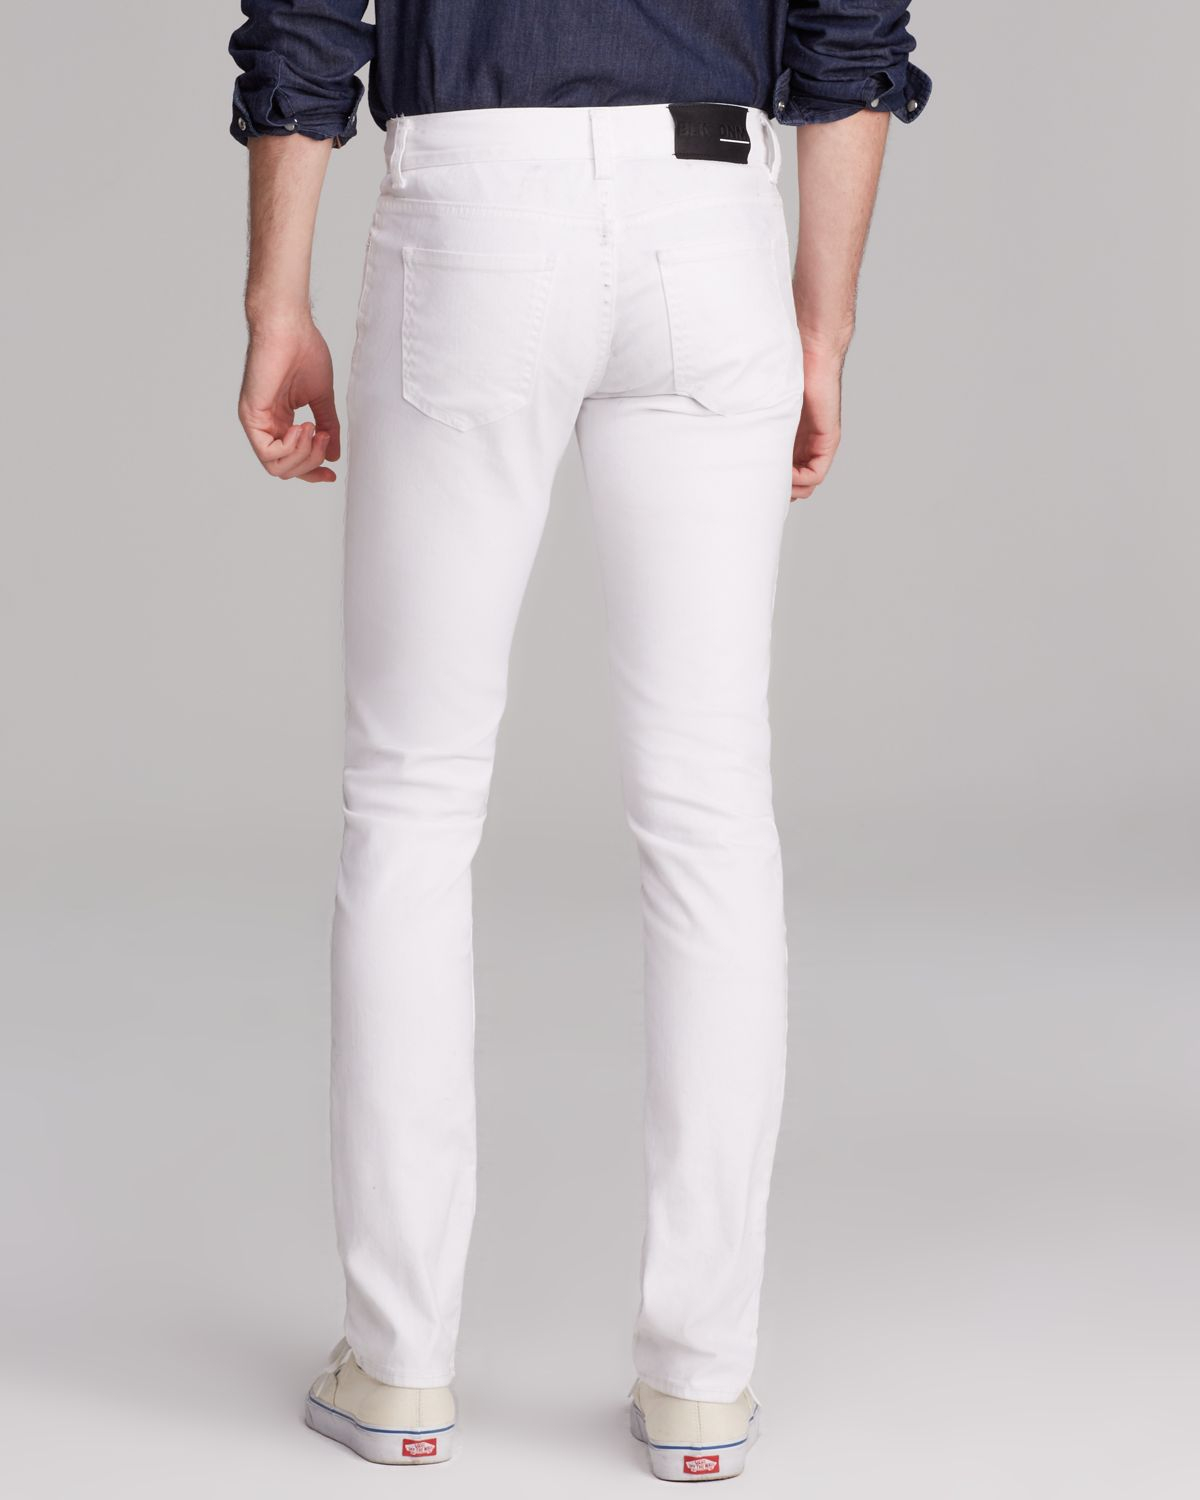 Blk dnm Jeans - Resin Coated 5 Slim Fit In Astor White in White ...